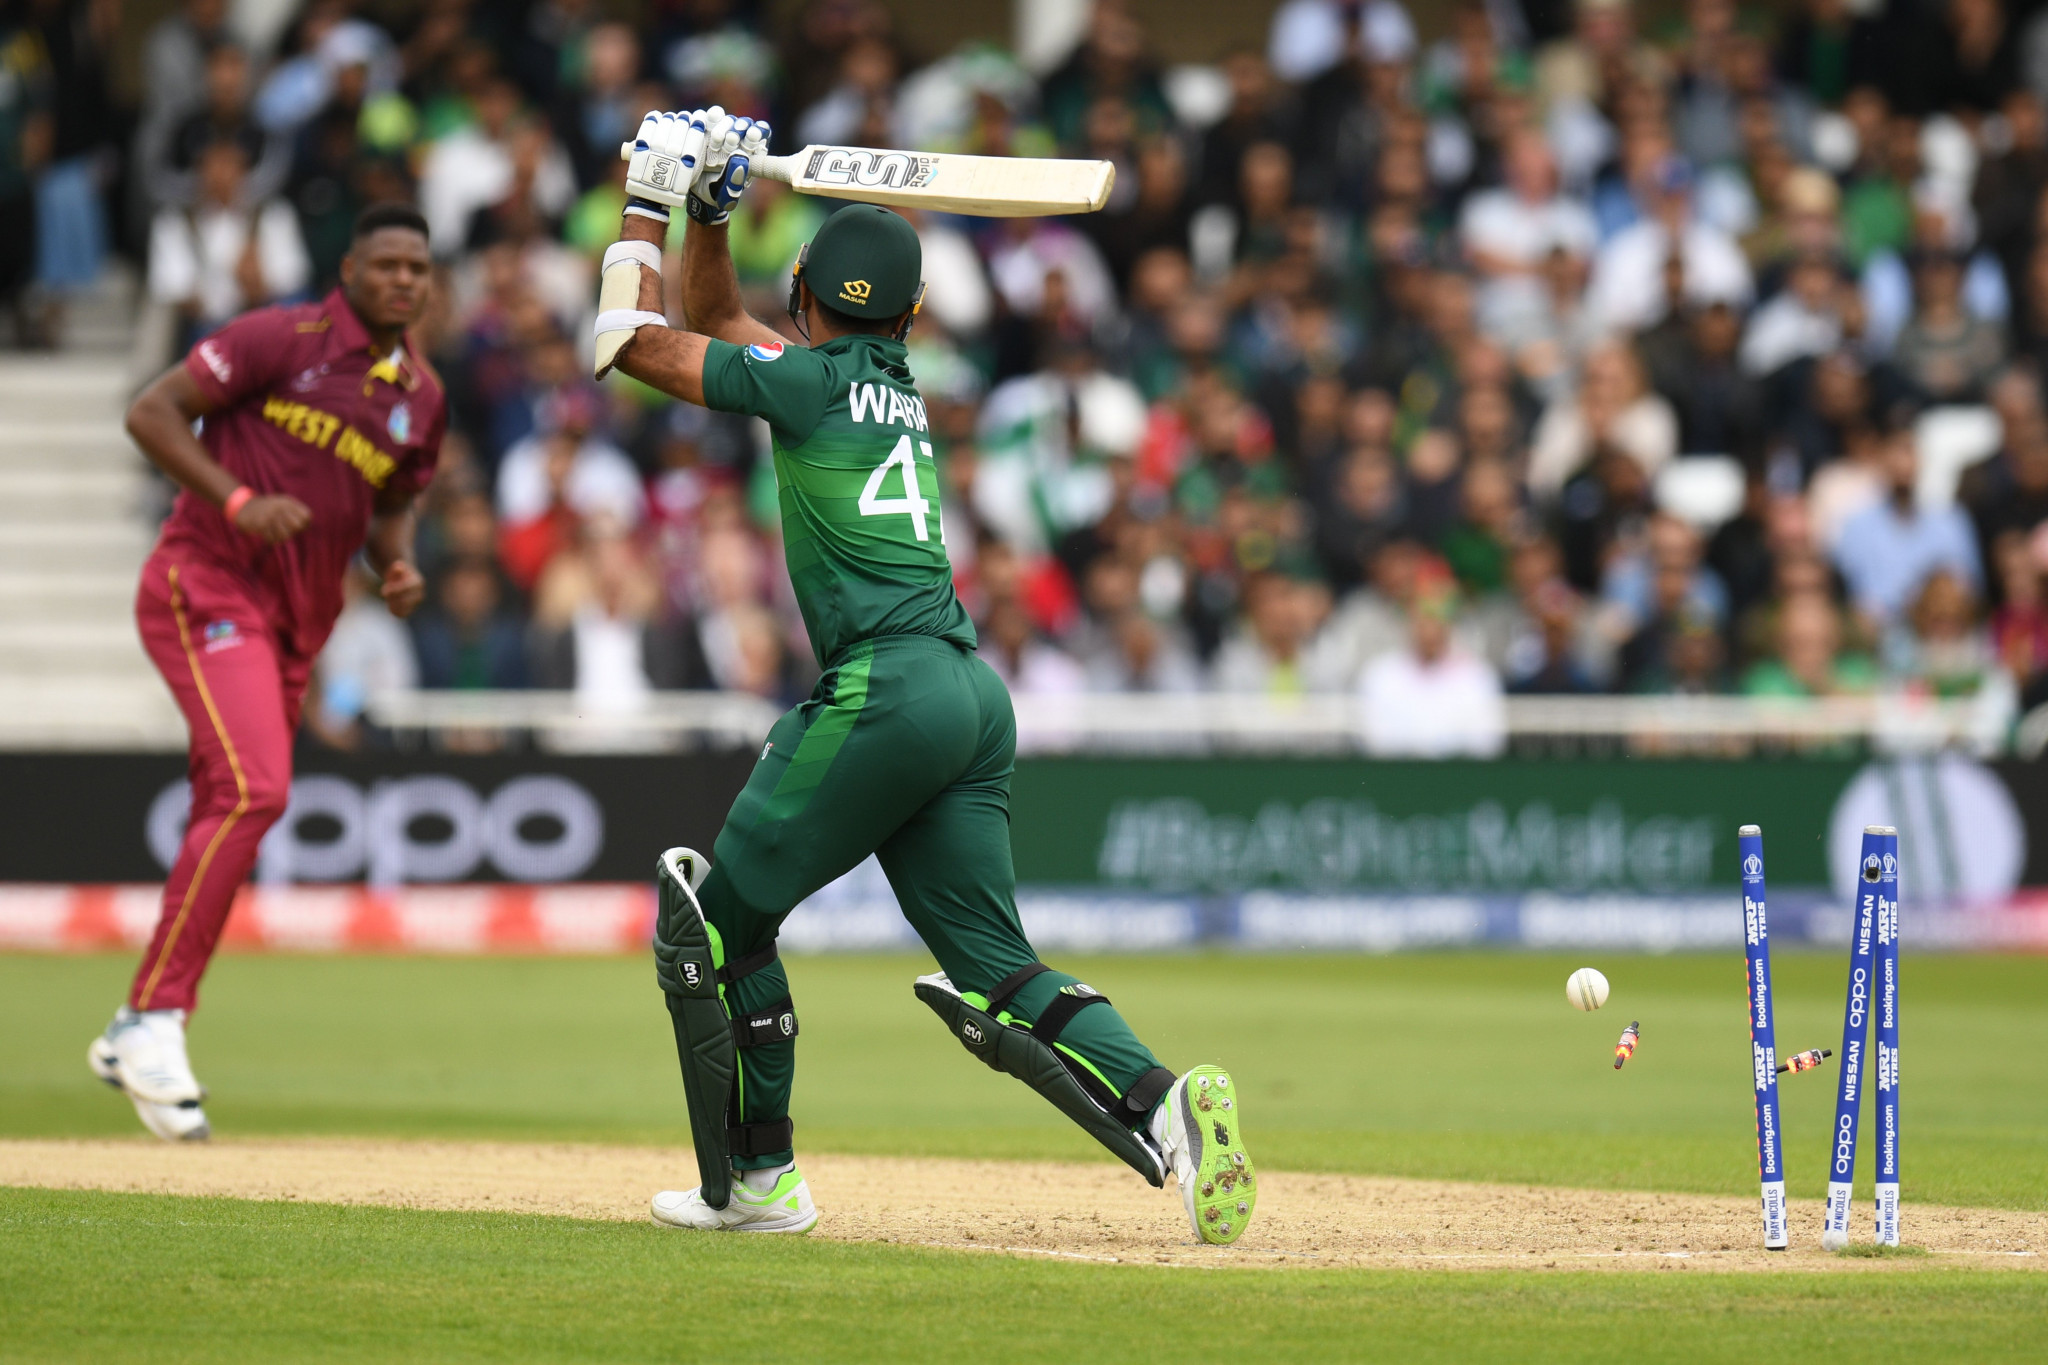 West Indies crush Pakistan in Cricket World Cup with stunning display of fast bowling